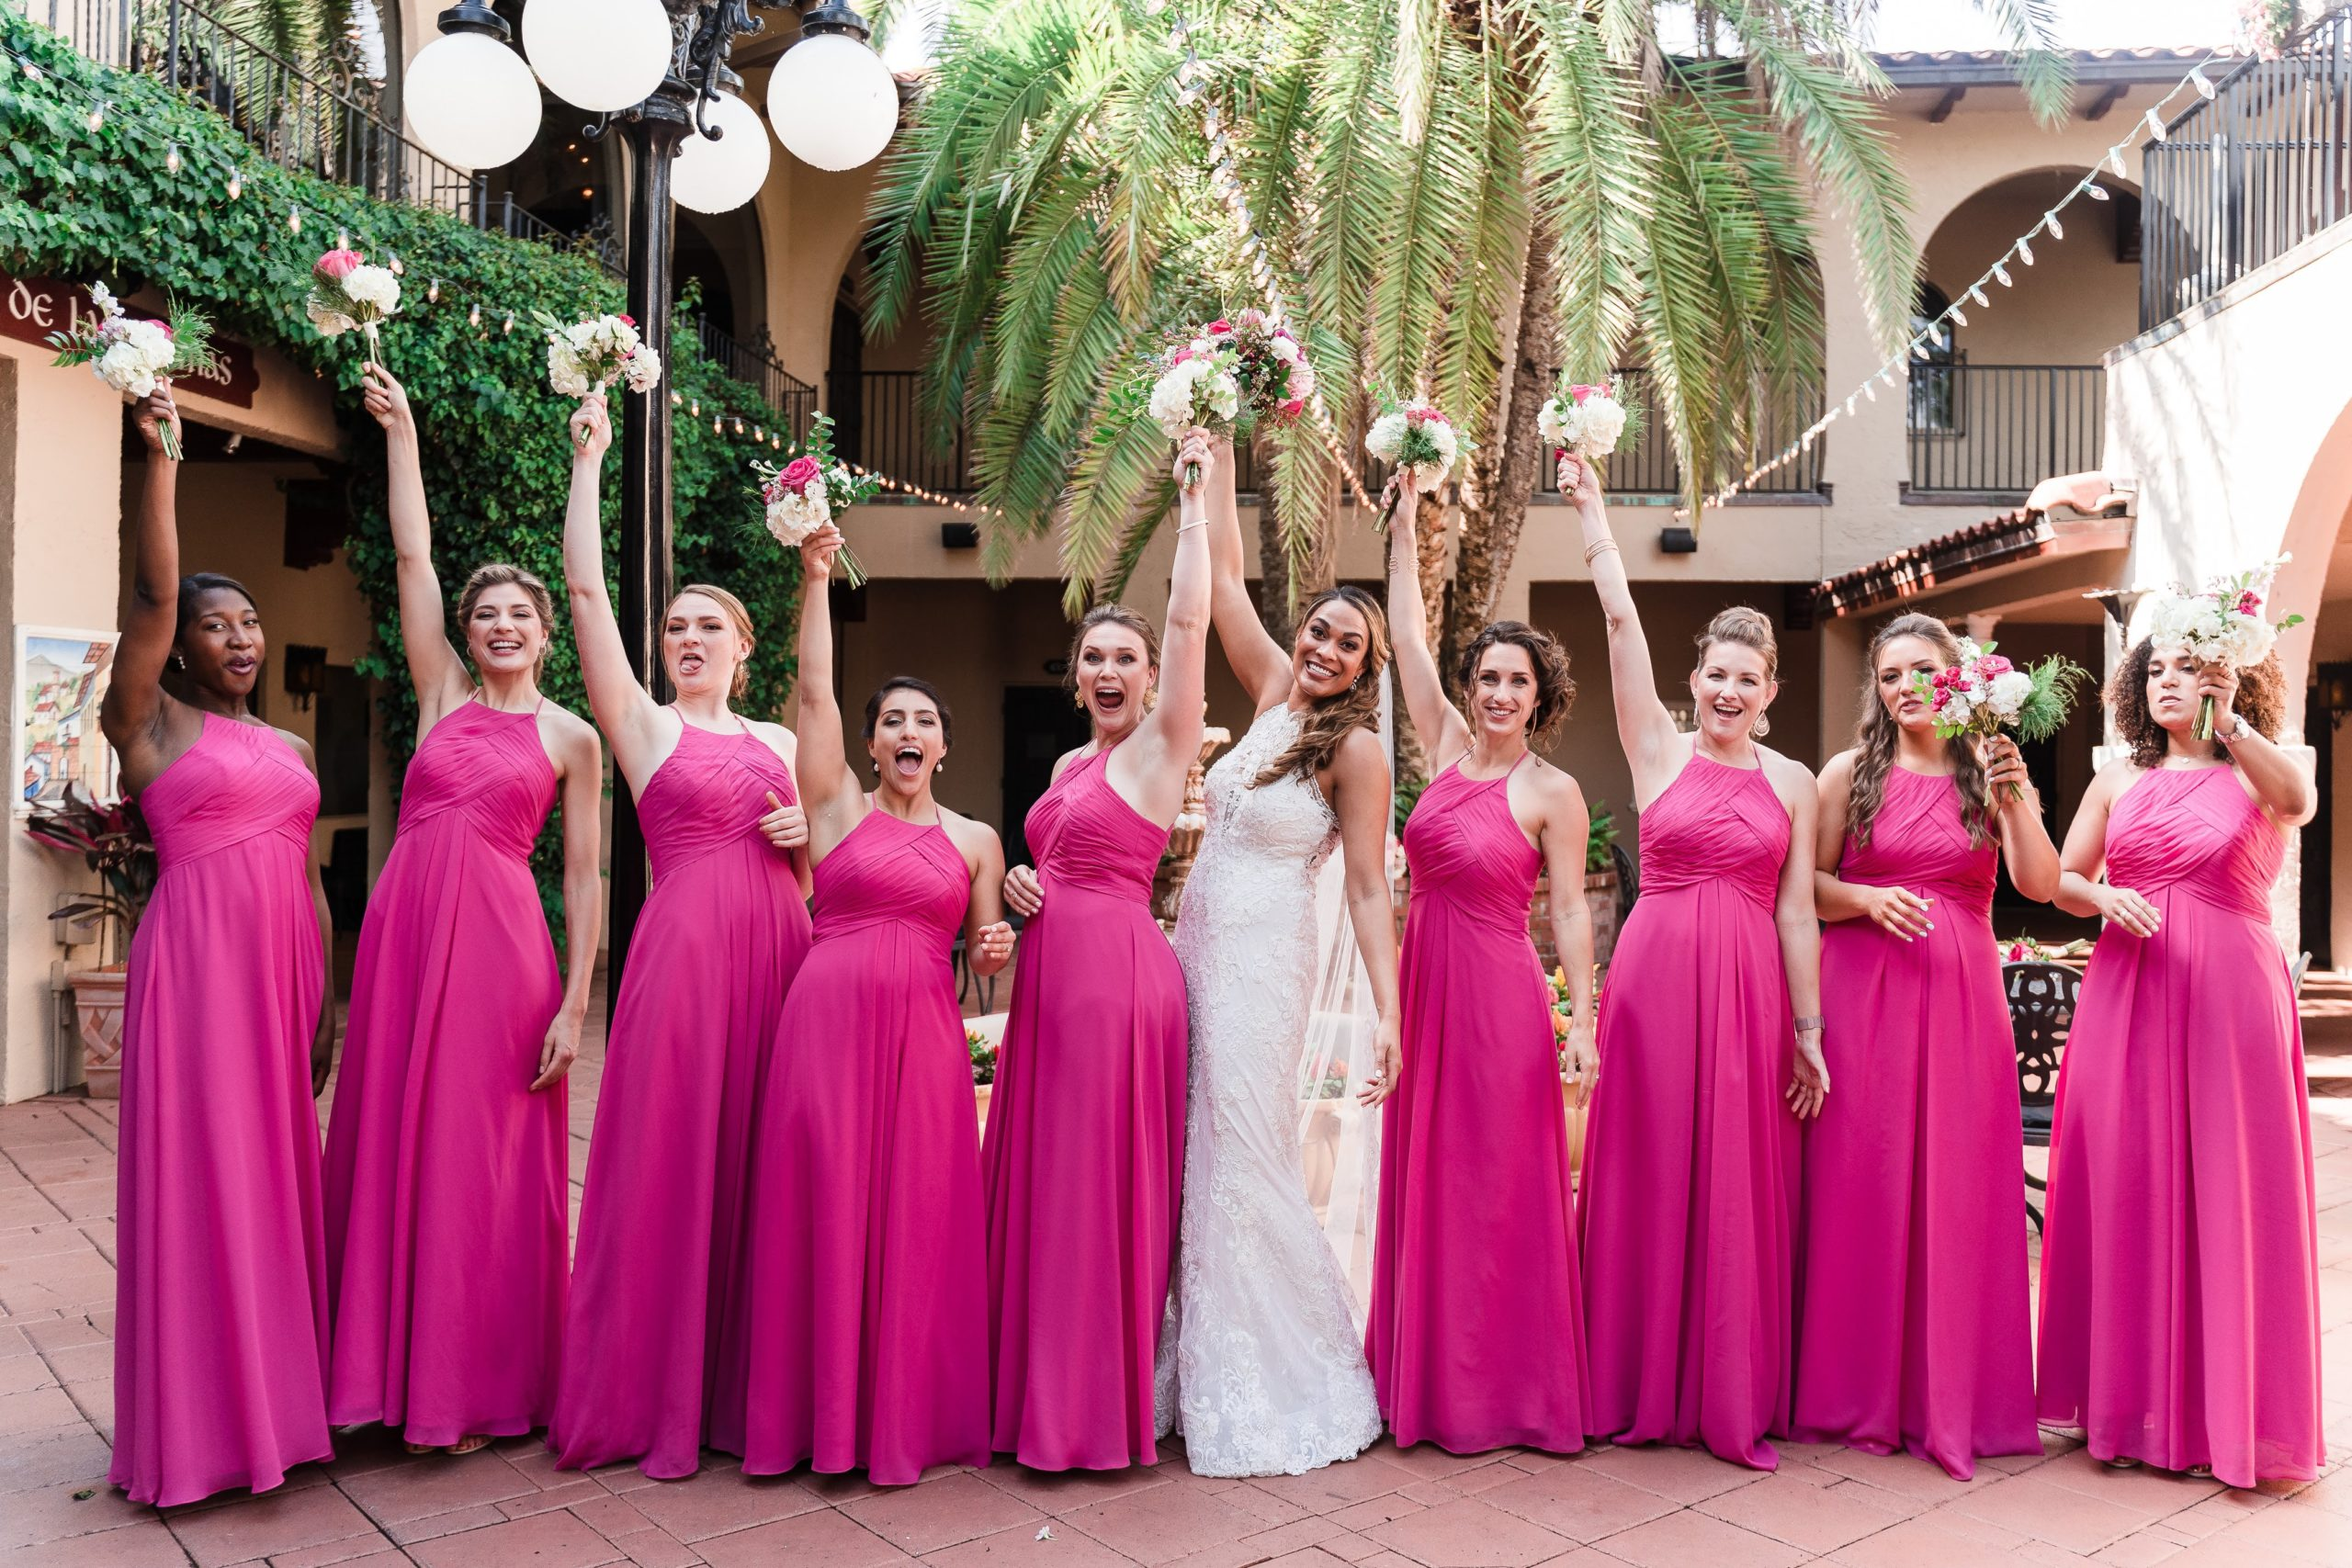 pink dresses on bridesmaids with bride holding flowers in the air